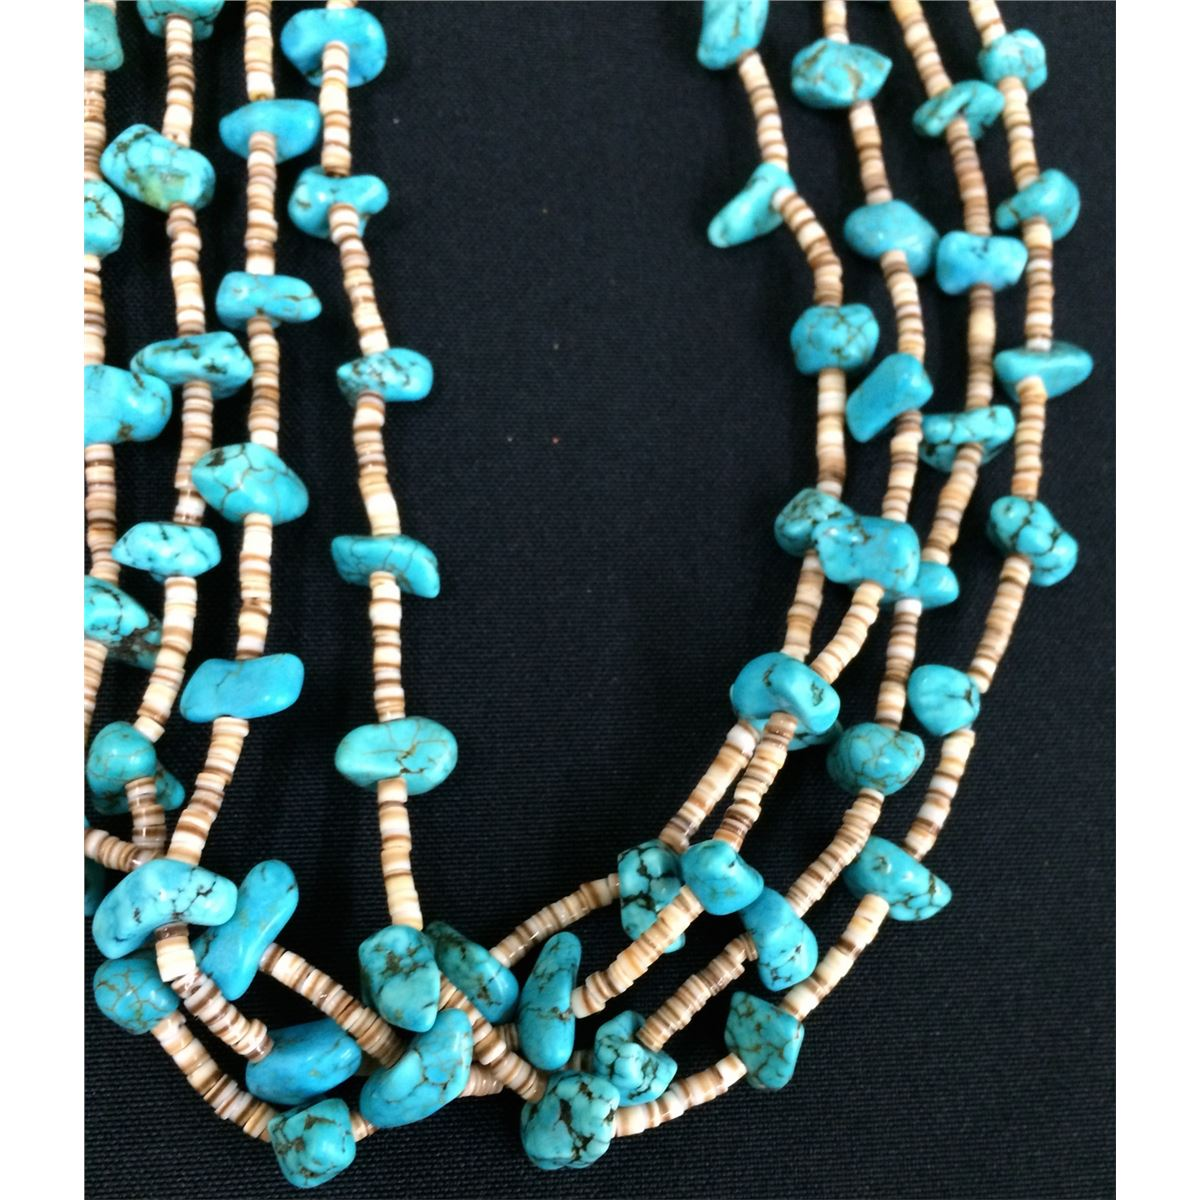 artist american native with strands necklace santo fox lita product by domingo turquoise atencio indian pueblo jewelry heishi photo